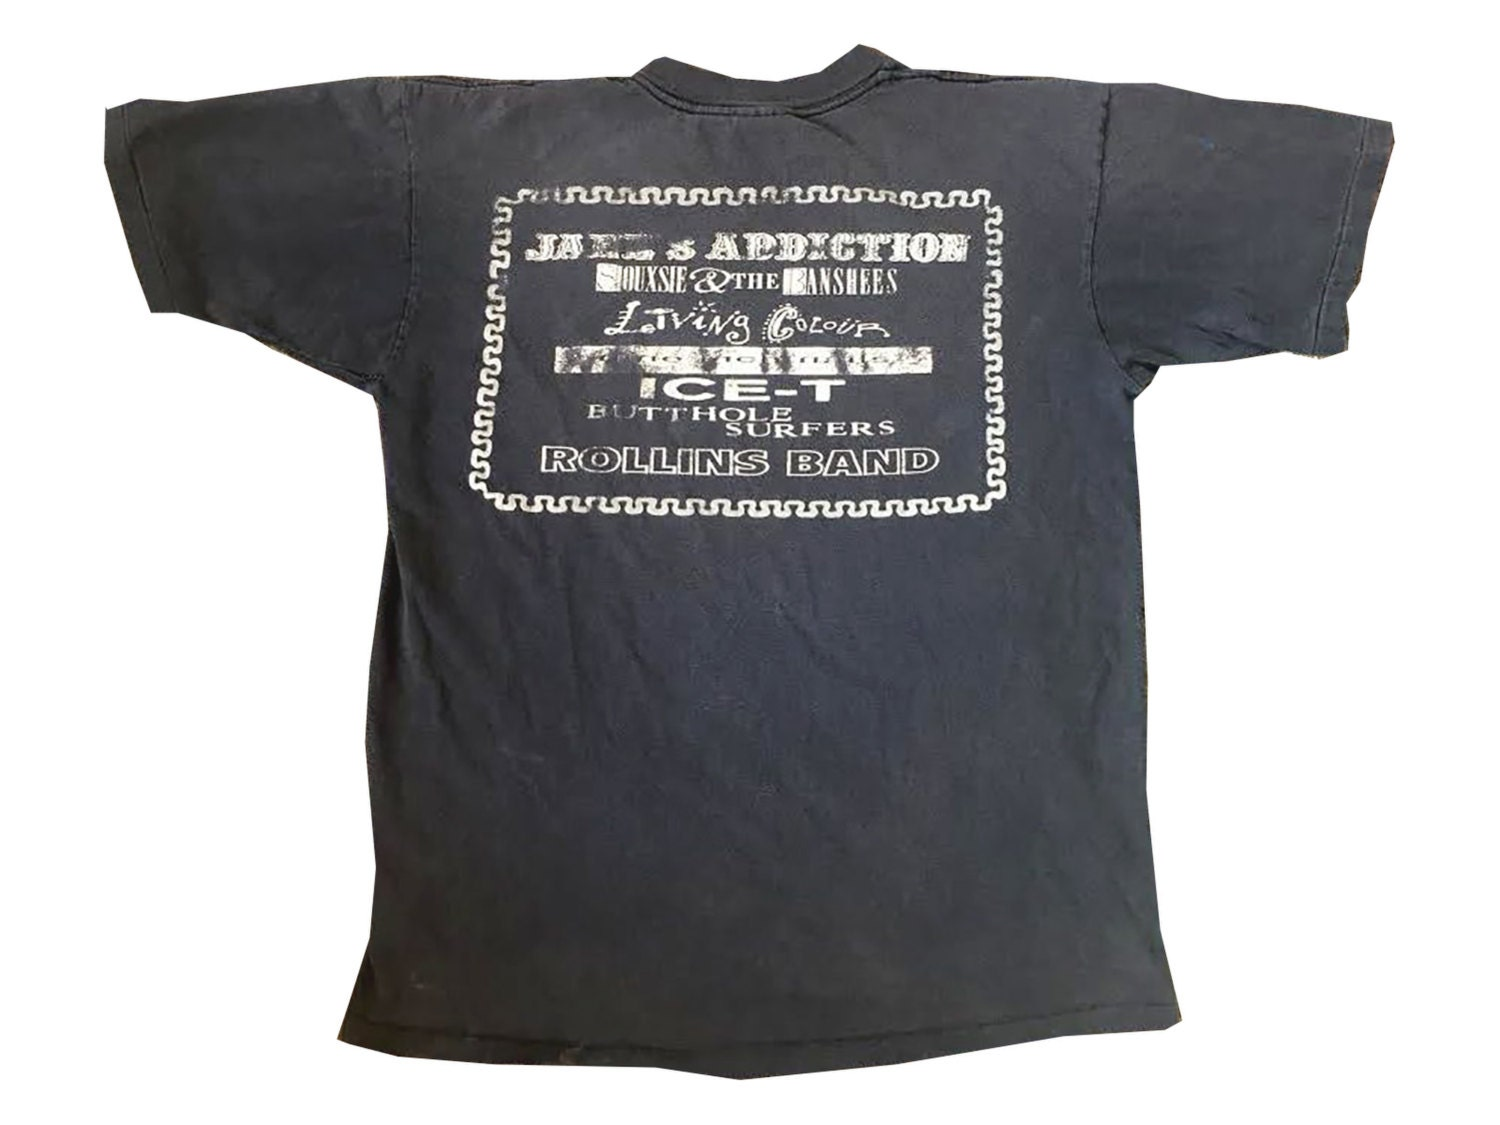 LOLLAPALOOZA 1991 Faded Tour Tour Concert Shirt Janes Addiction Siouxsie Rollins Grunge Tee